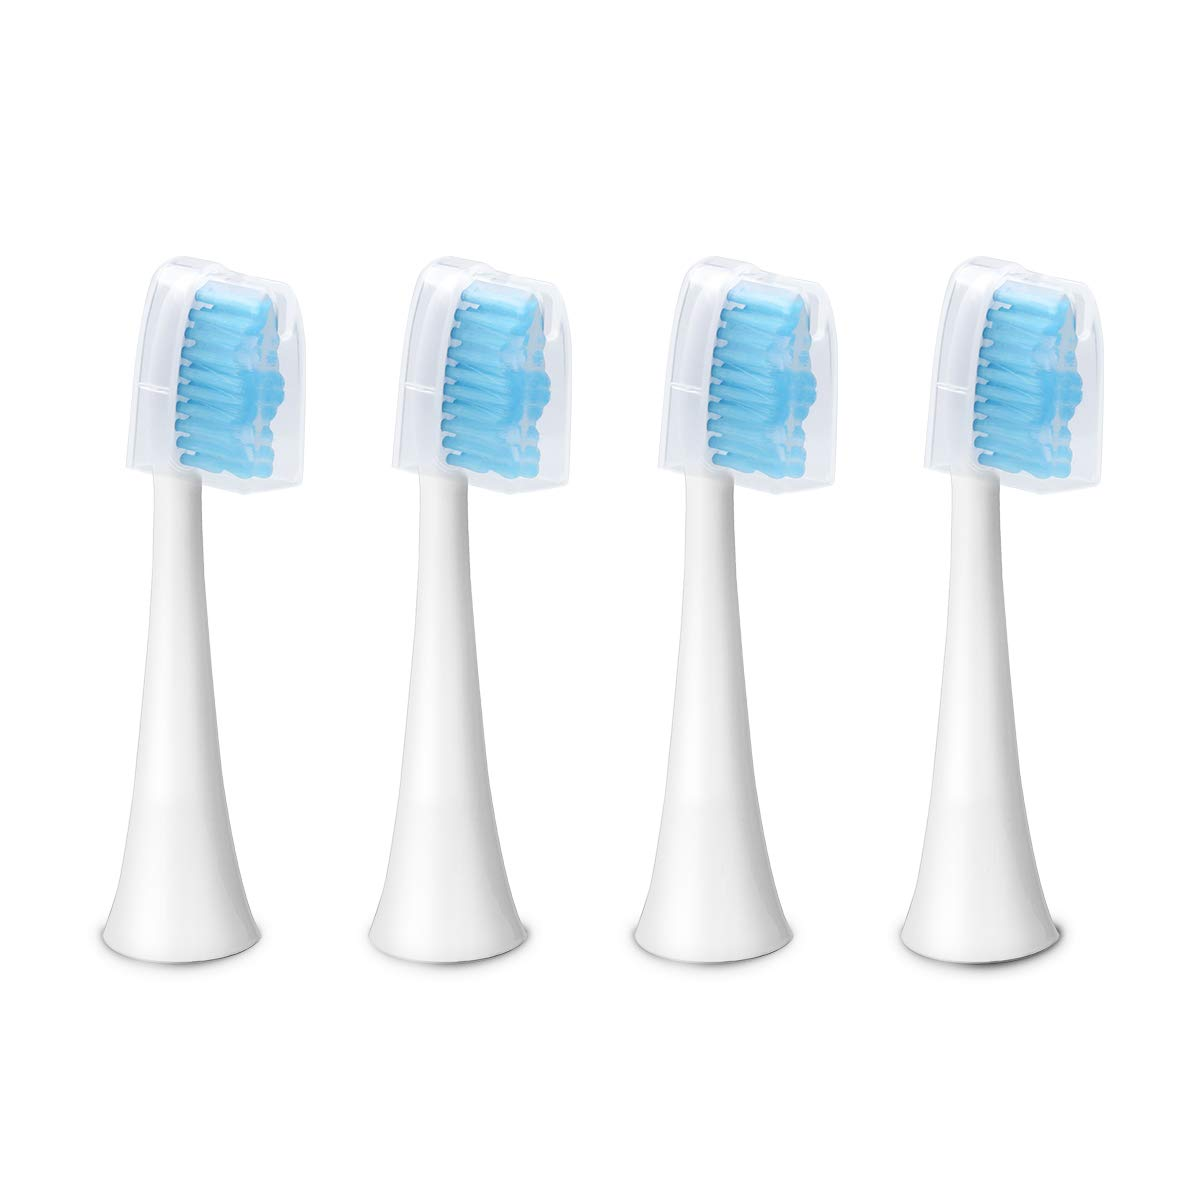 Electric Toothbrush Heads, Replacement Head for CoiTek CK-H01 4PCS Set